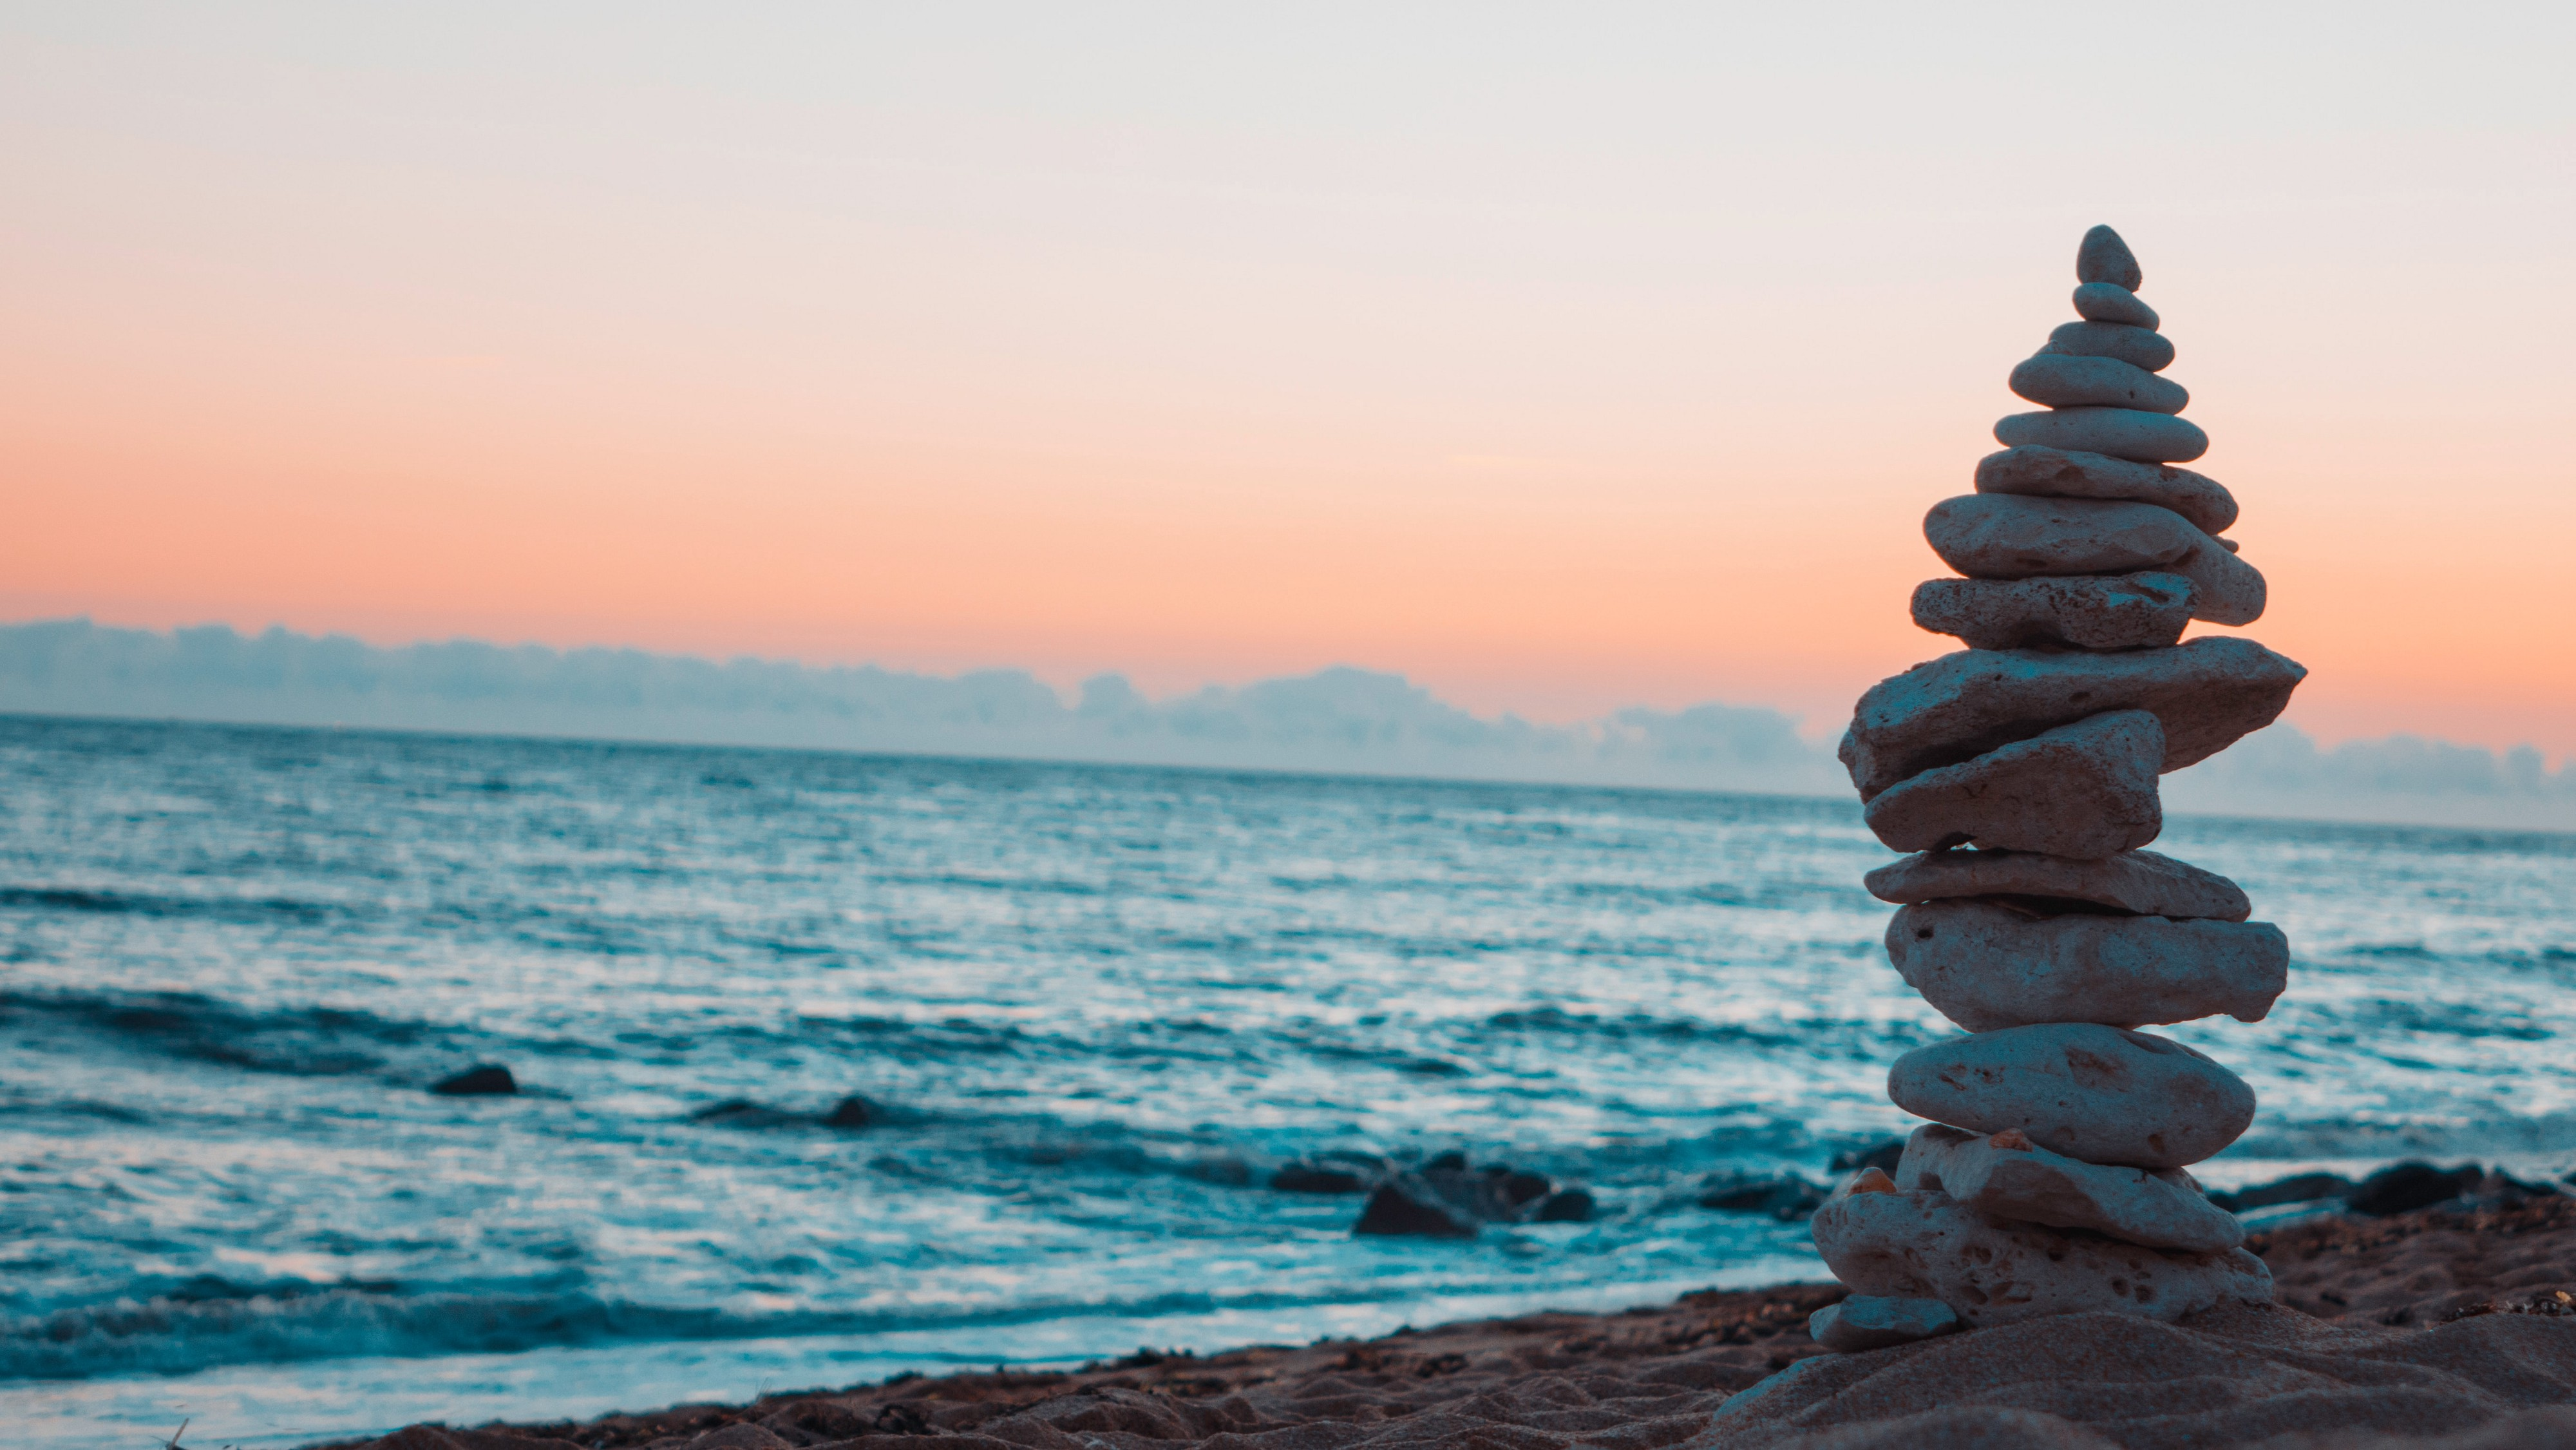 How to create a rule of life for spiritual growth